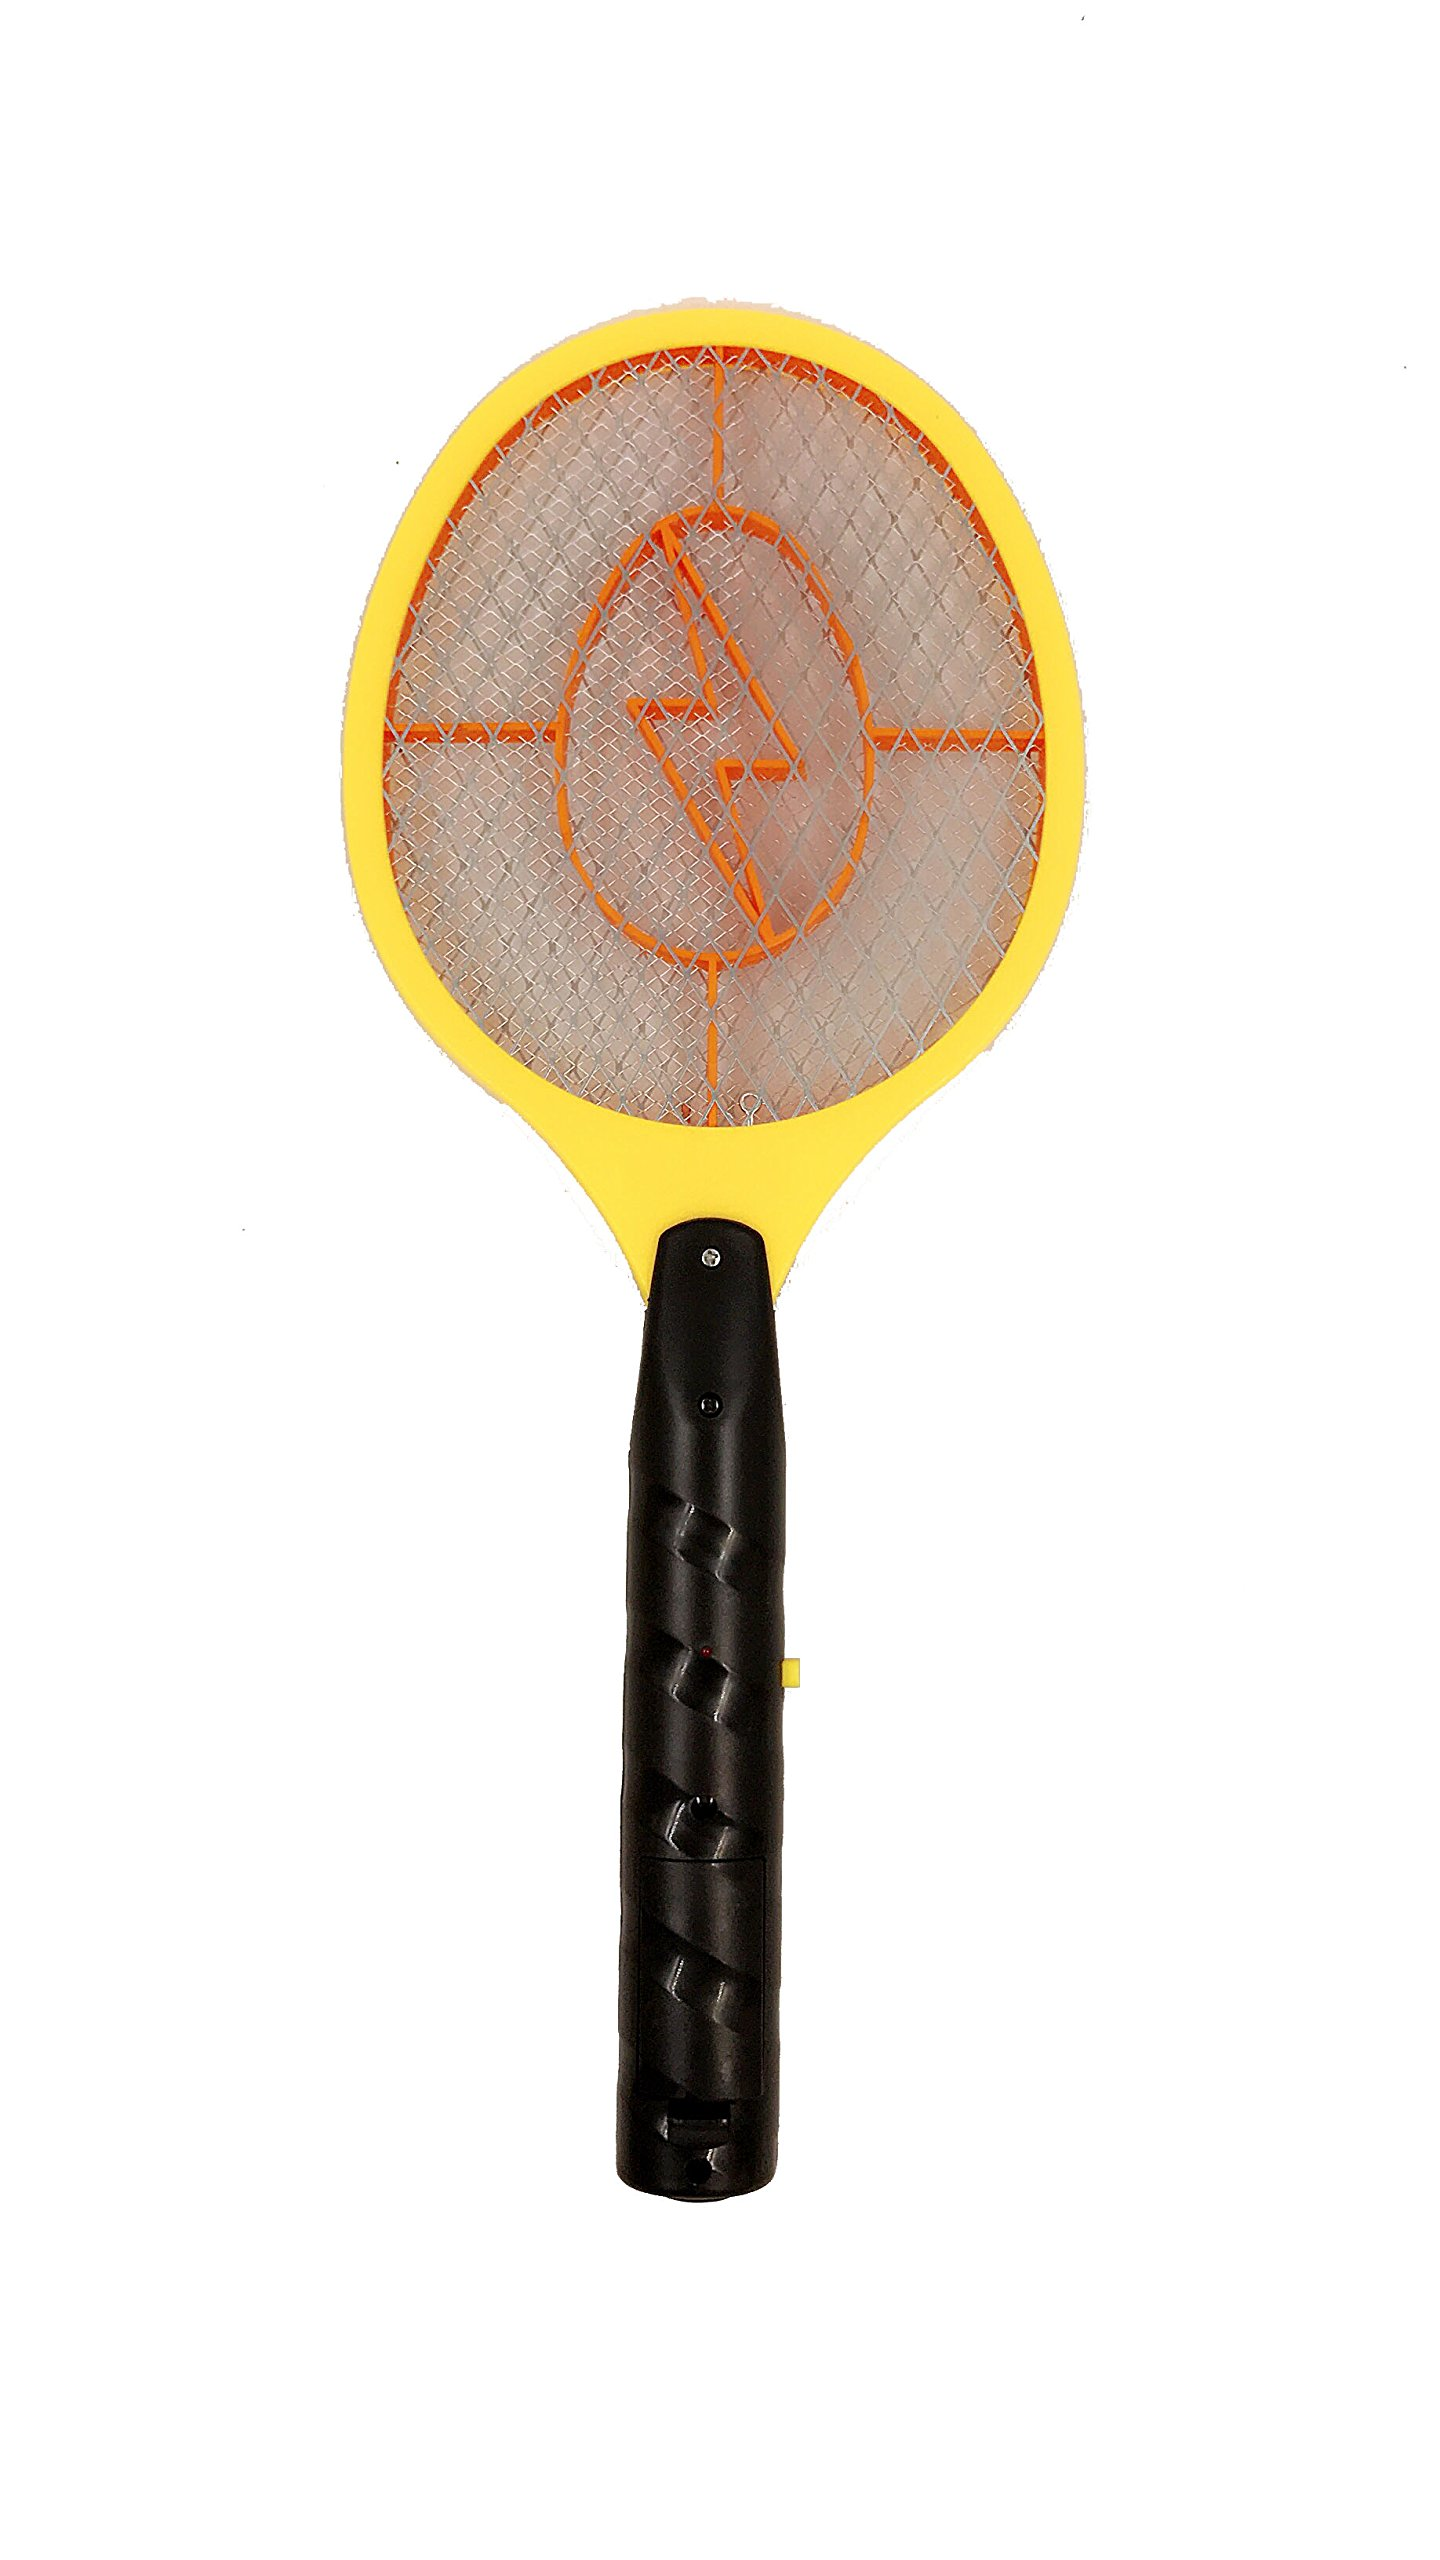 2 PCS of The Amazing Handheld Bug Zapper, Bug Fly Mosquito Zapper Swatter Killer by TruePower (Image #3)